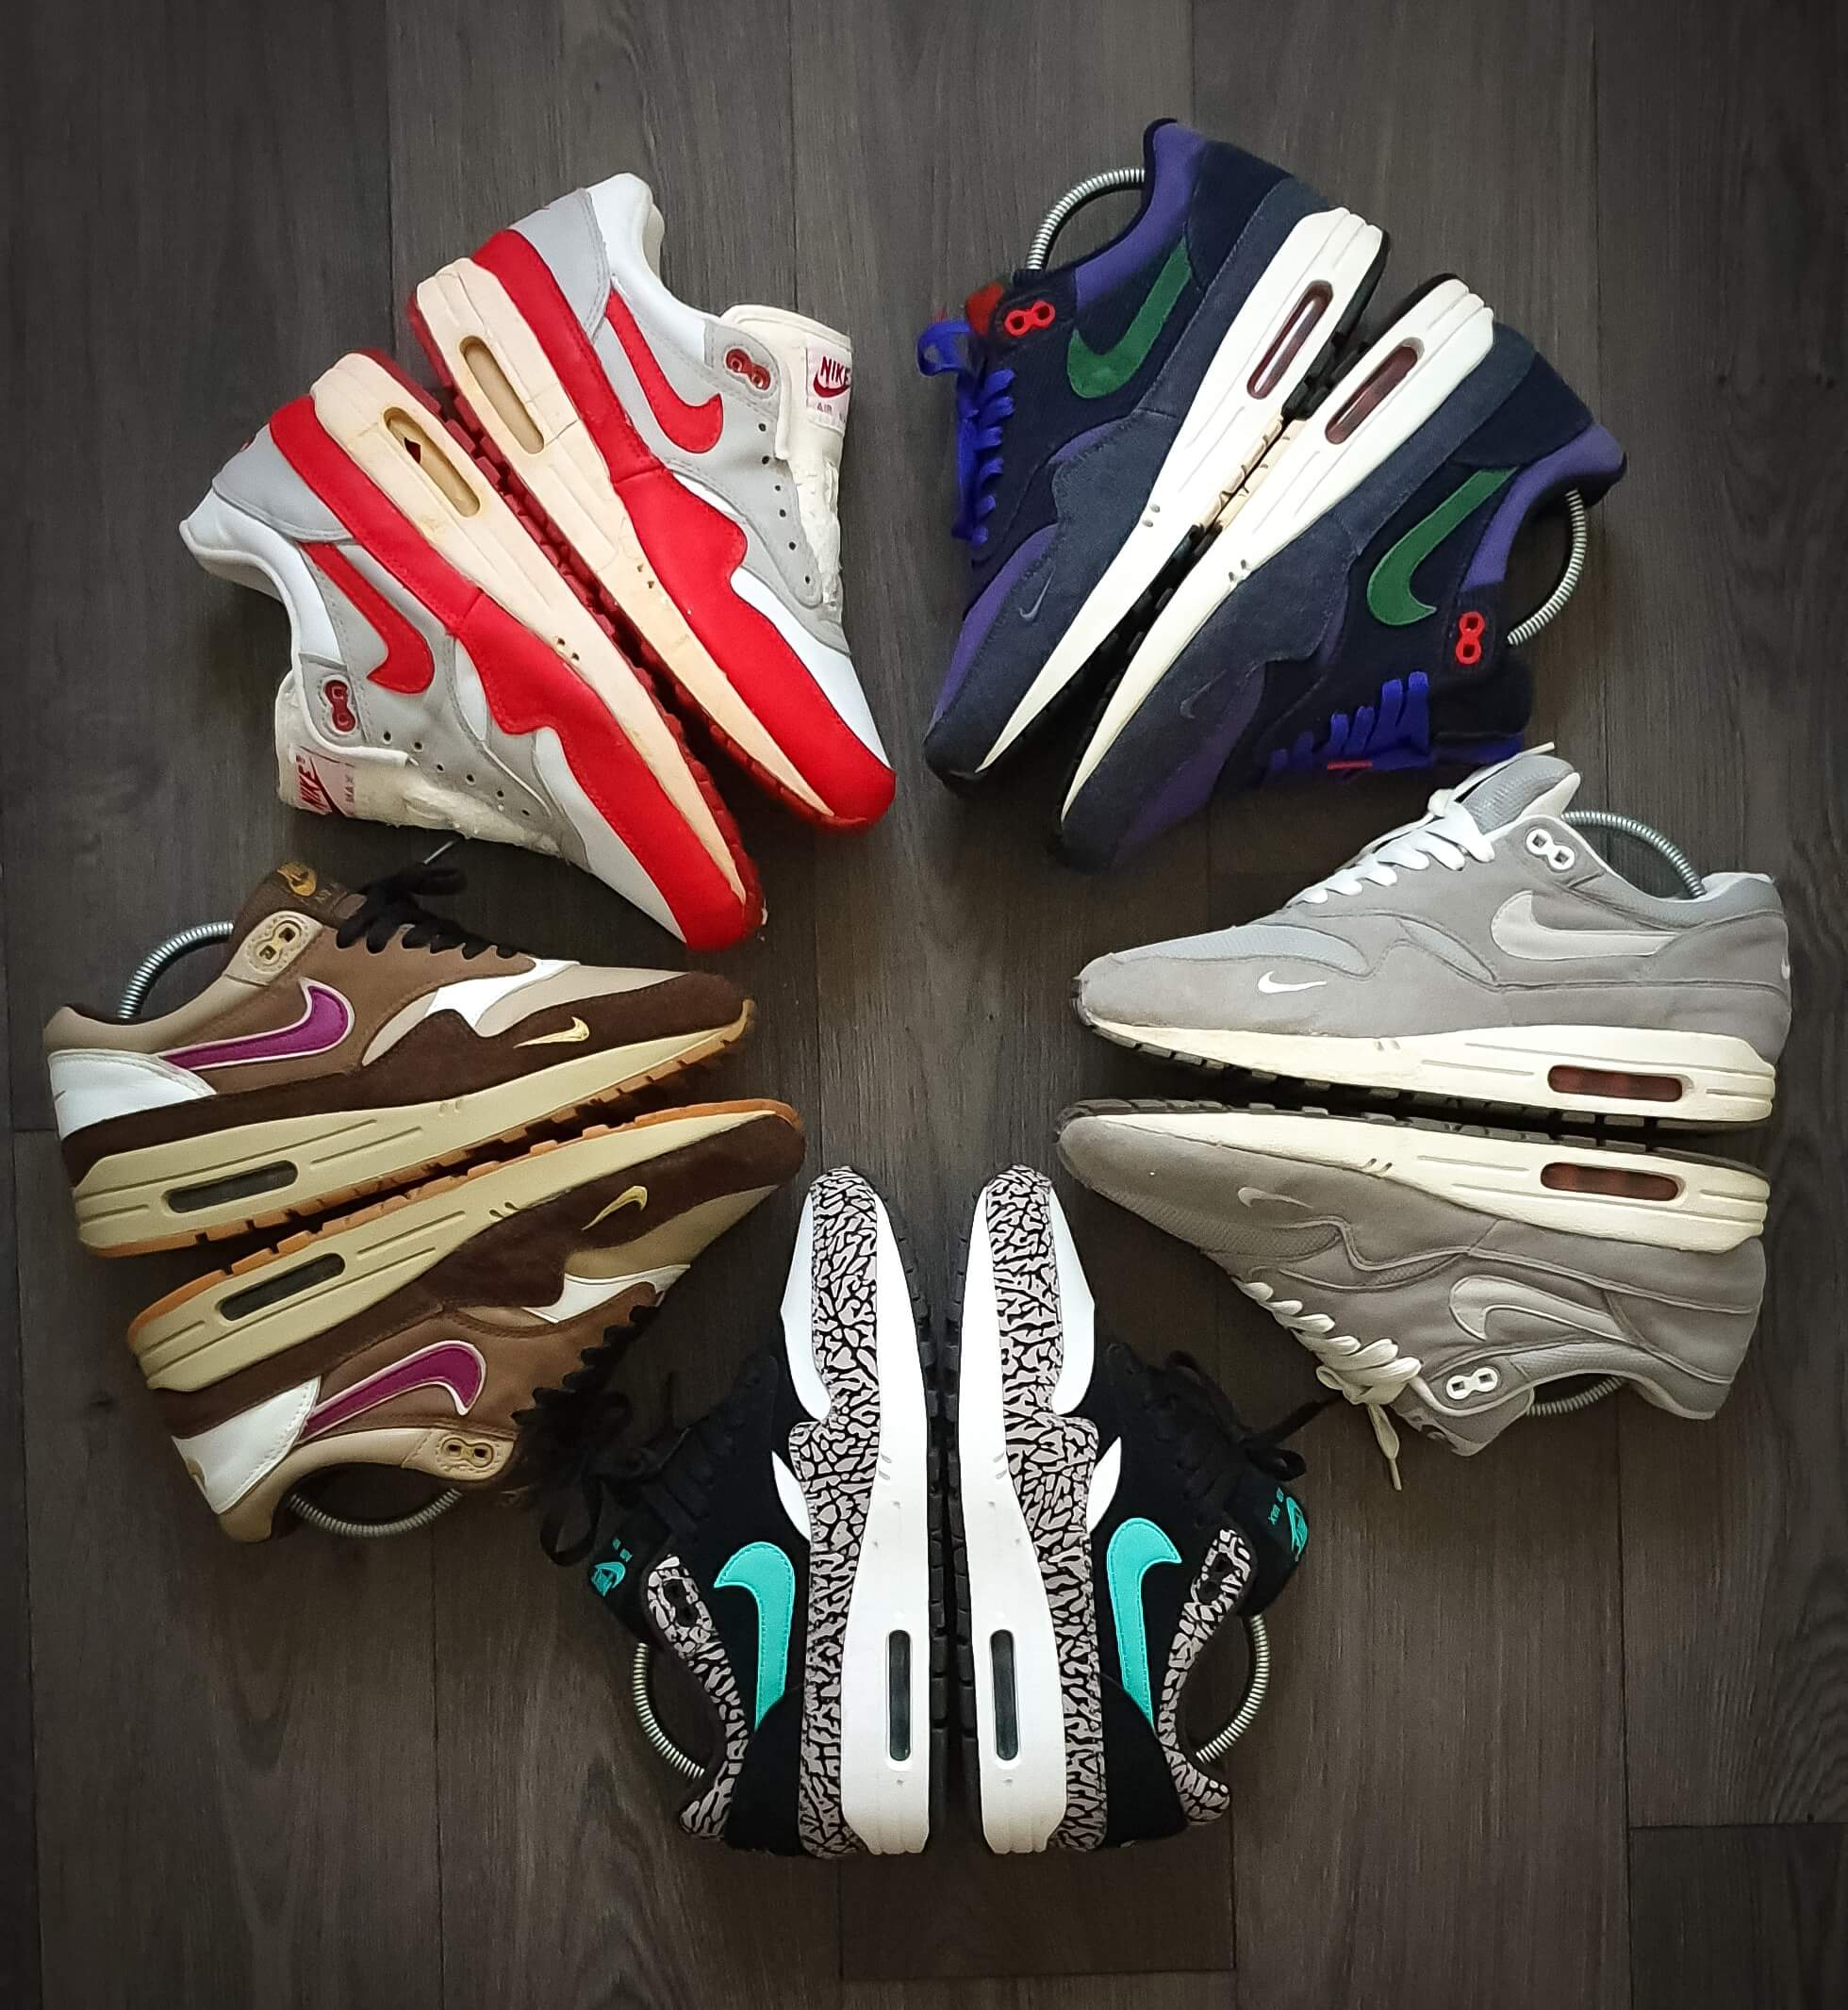 Nike Air Max 1 Wheel of Fire Sneakerwheel collection